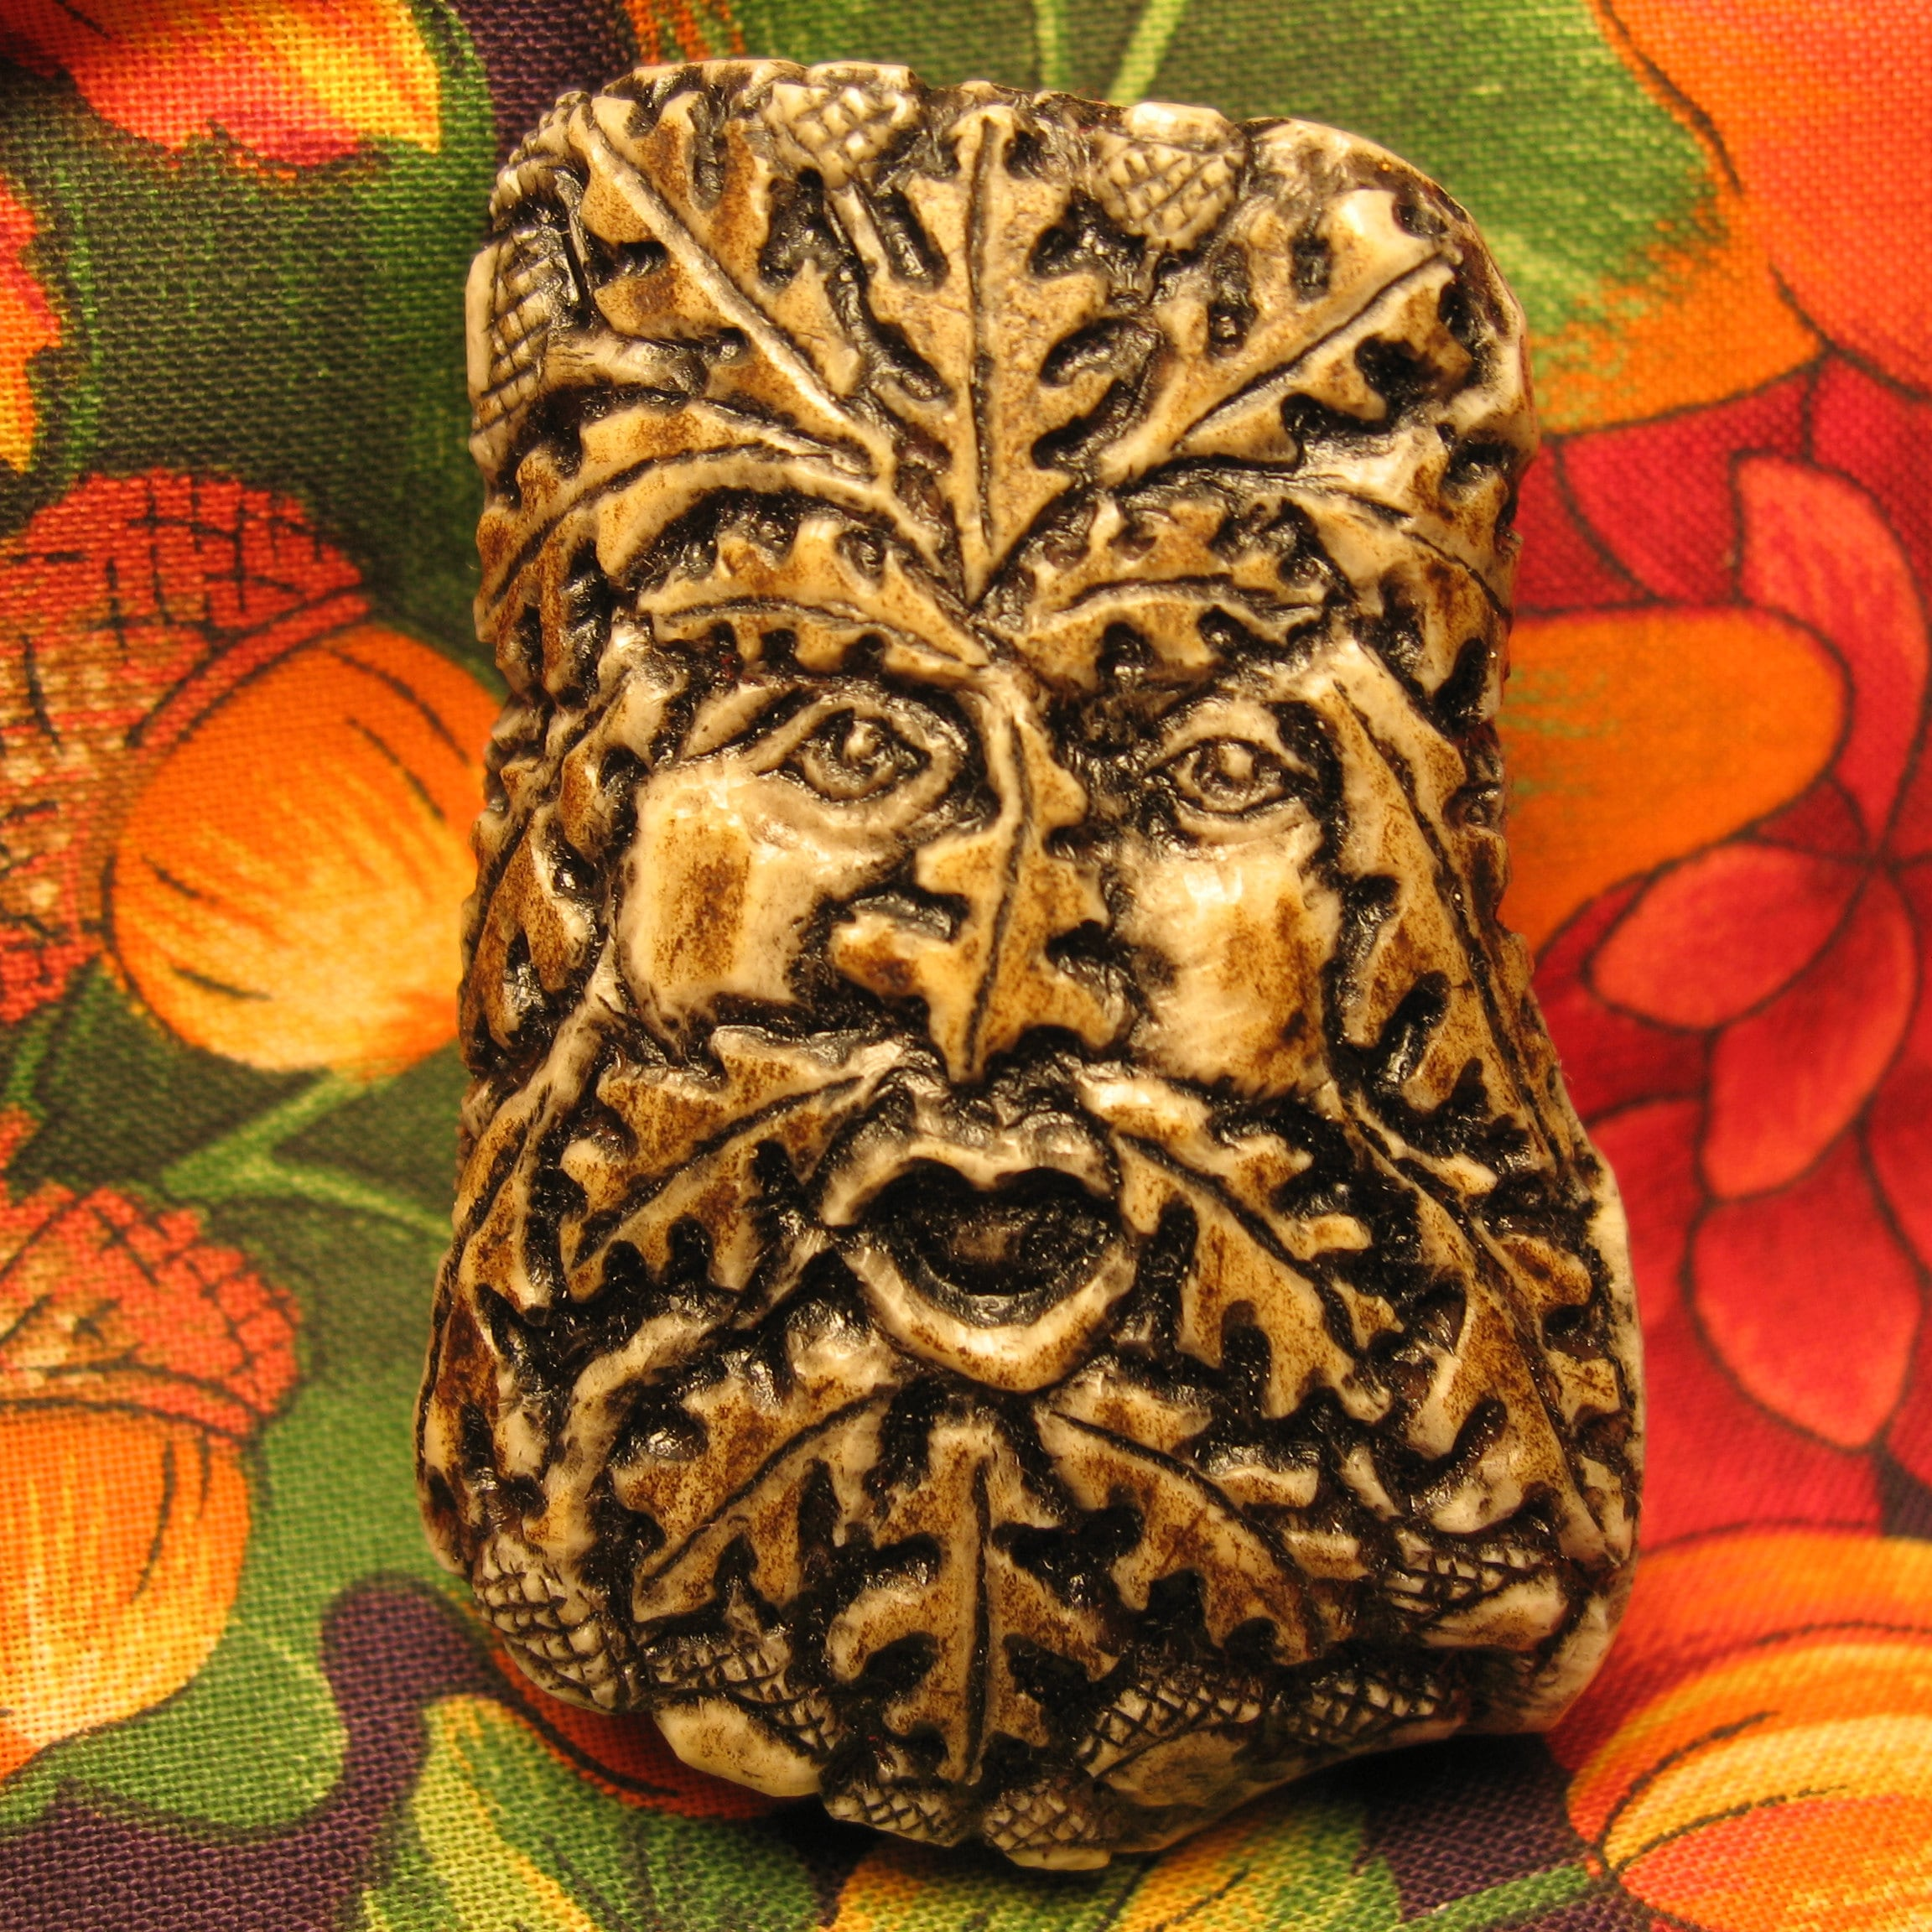 Carved Tooth Greenman with mushroom and Oak reproduction leaves zipper pull zipper charm Accessories Purses /& Bags Medieval Woodspirit